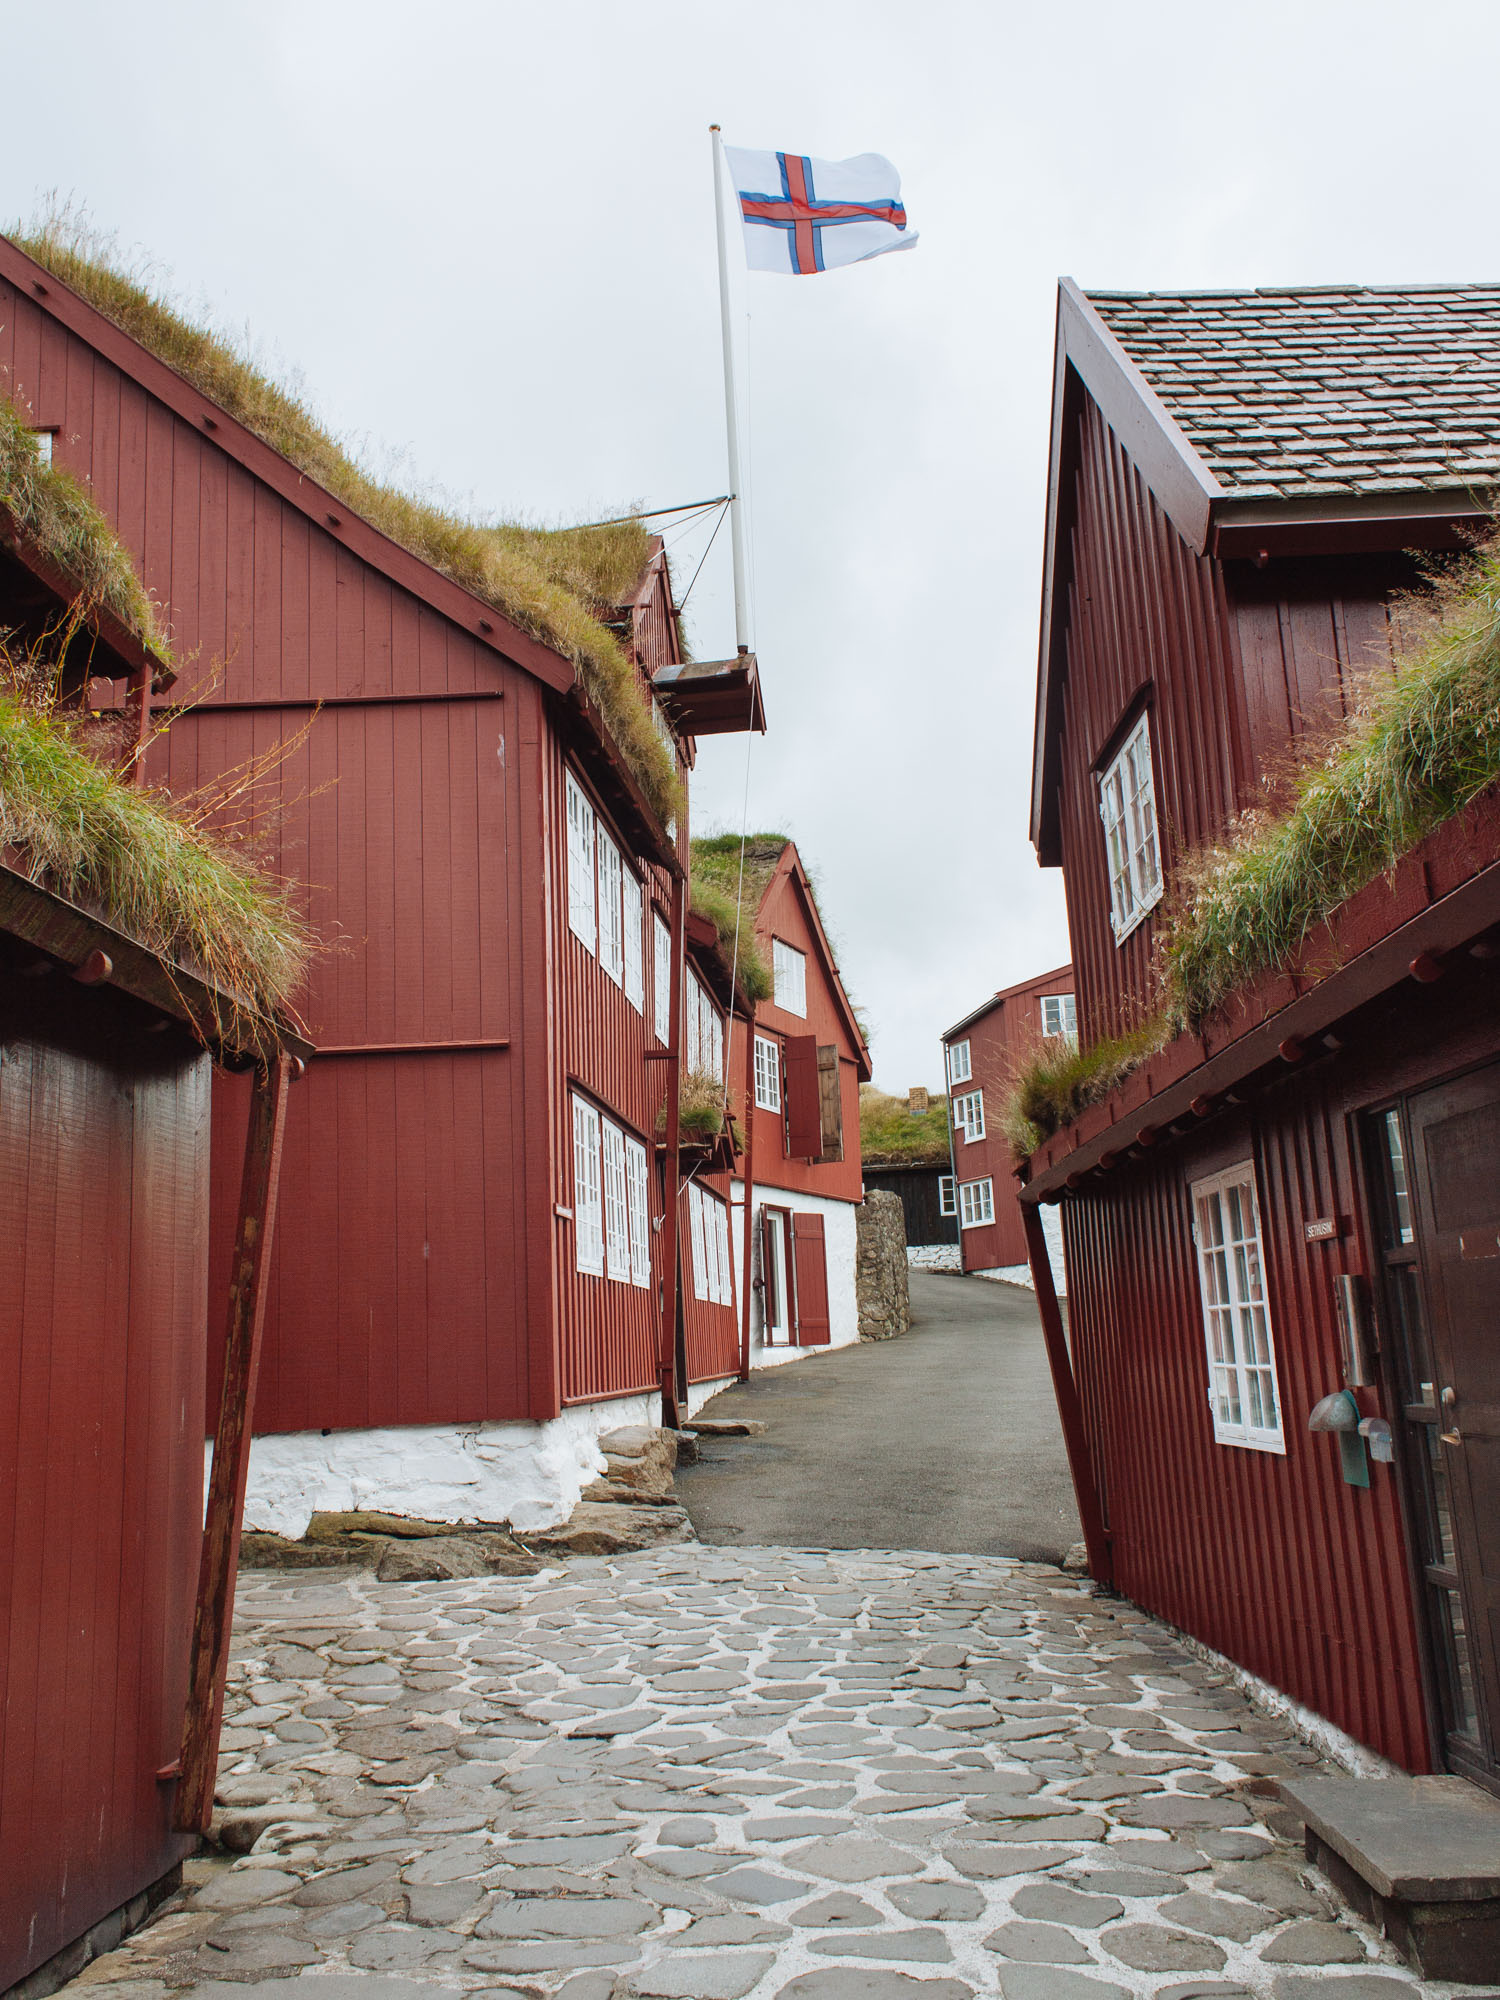 The government buildings in the old streets of Tórshavn, the capital.